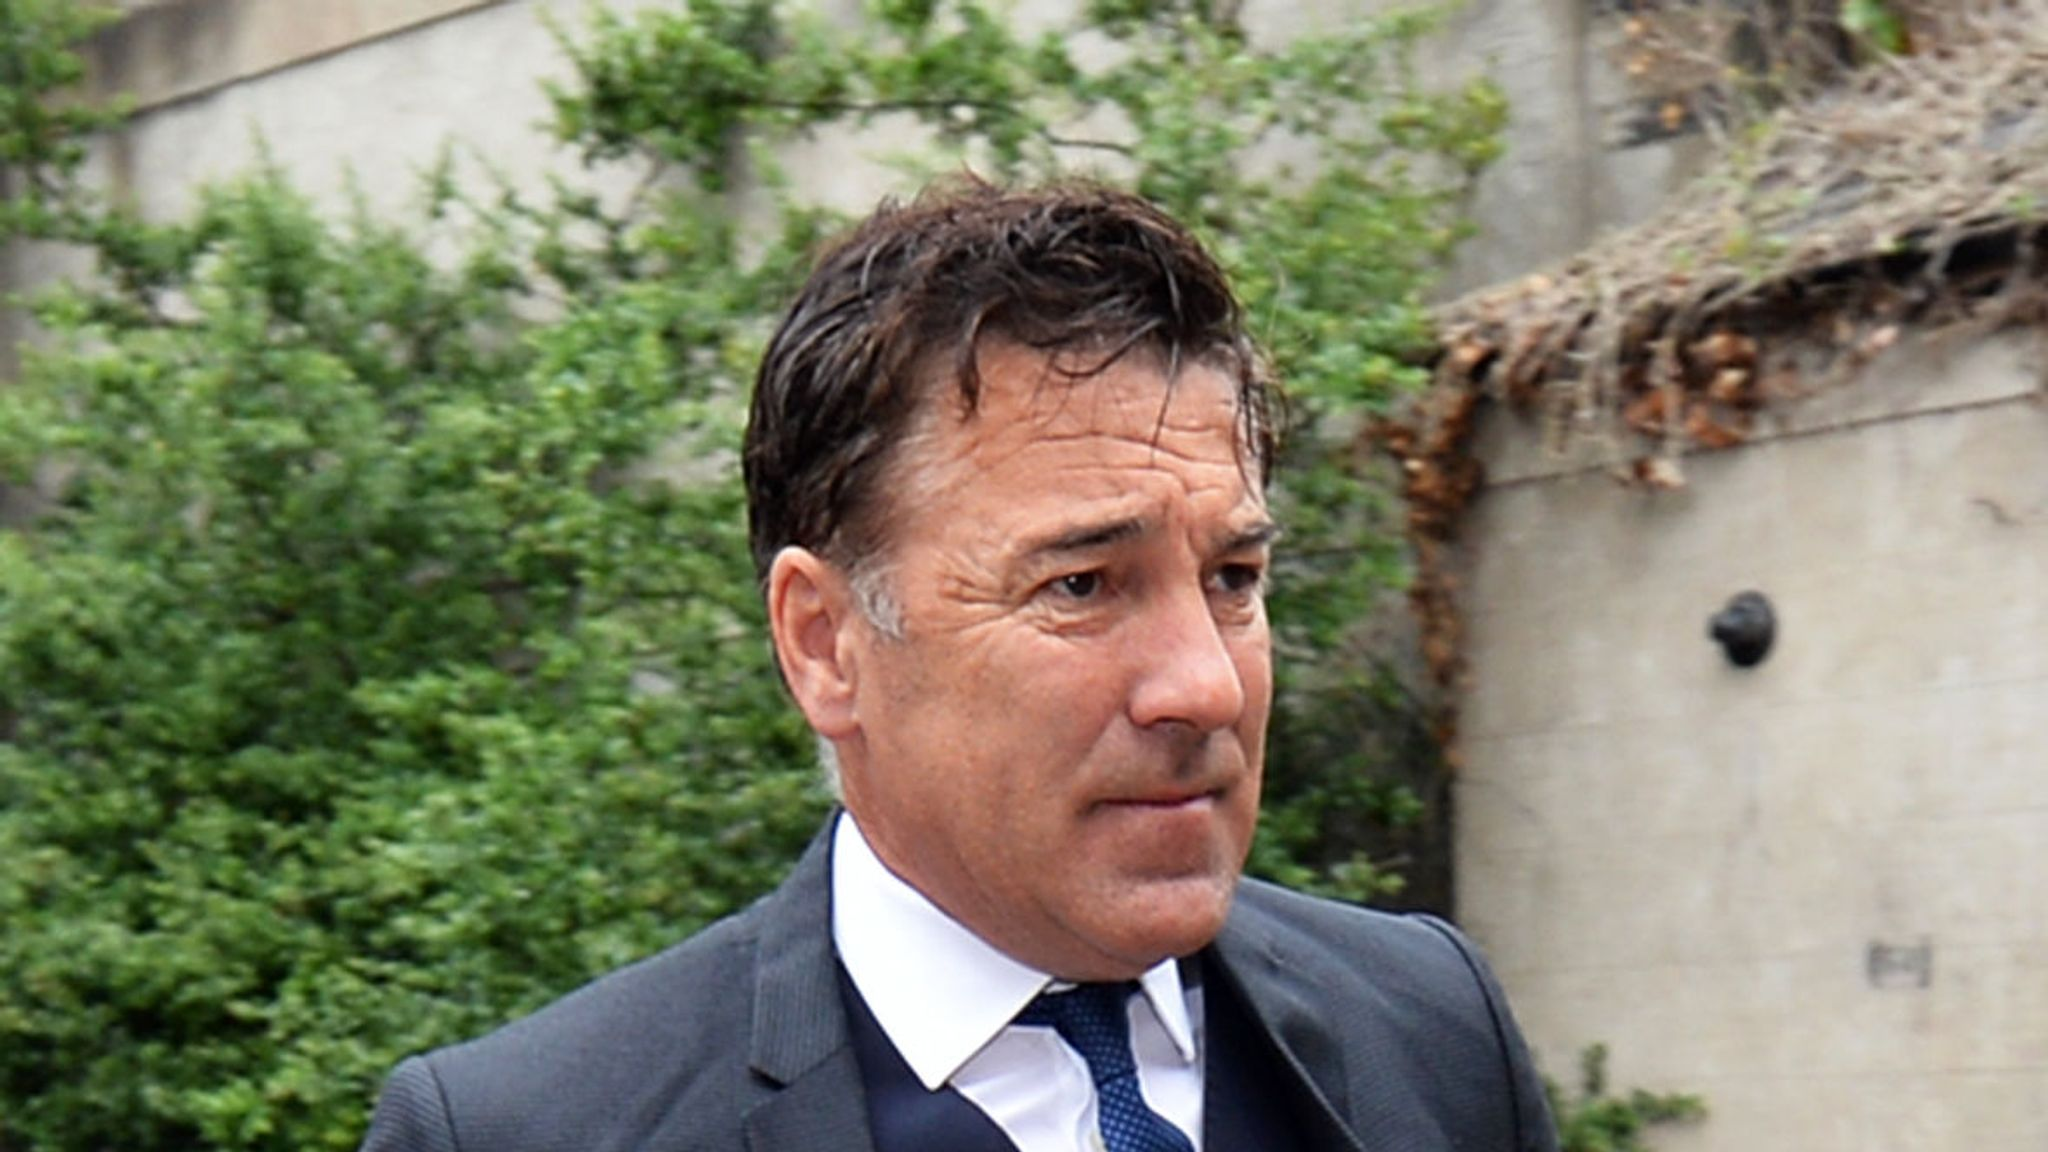 Dean Saunders wins appeal against jail sentence for failing to take breath test